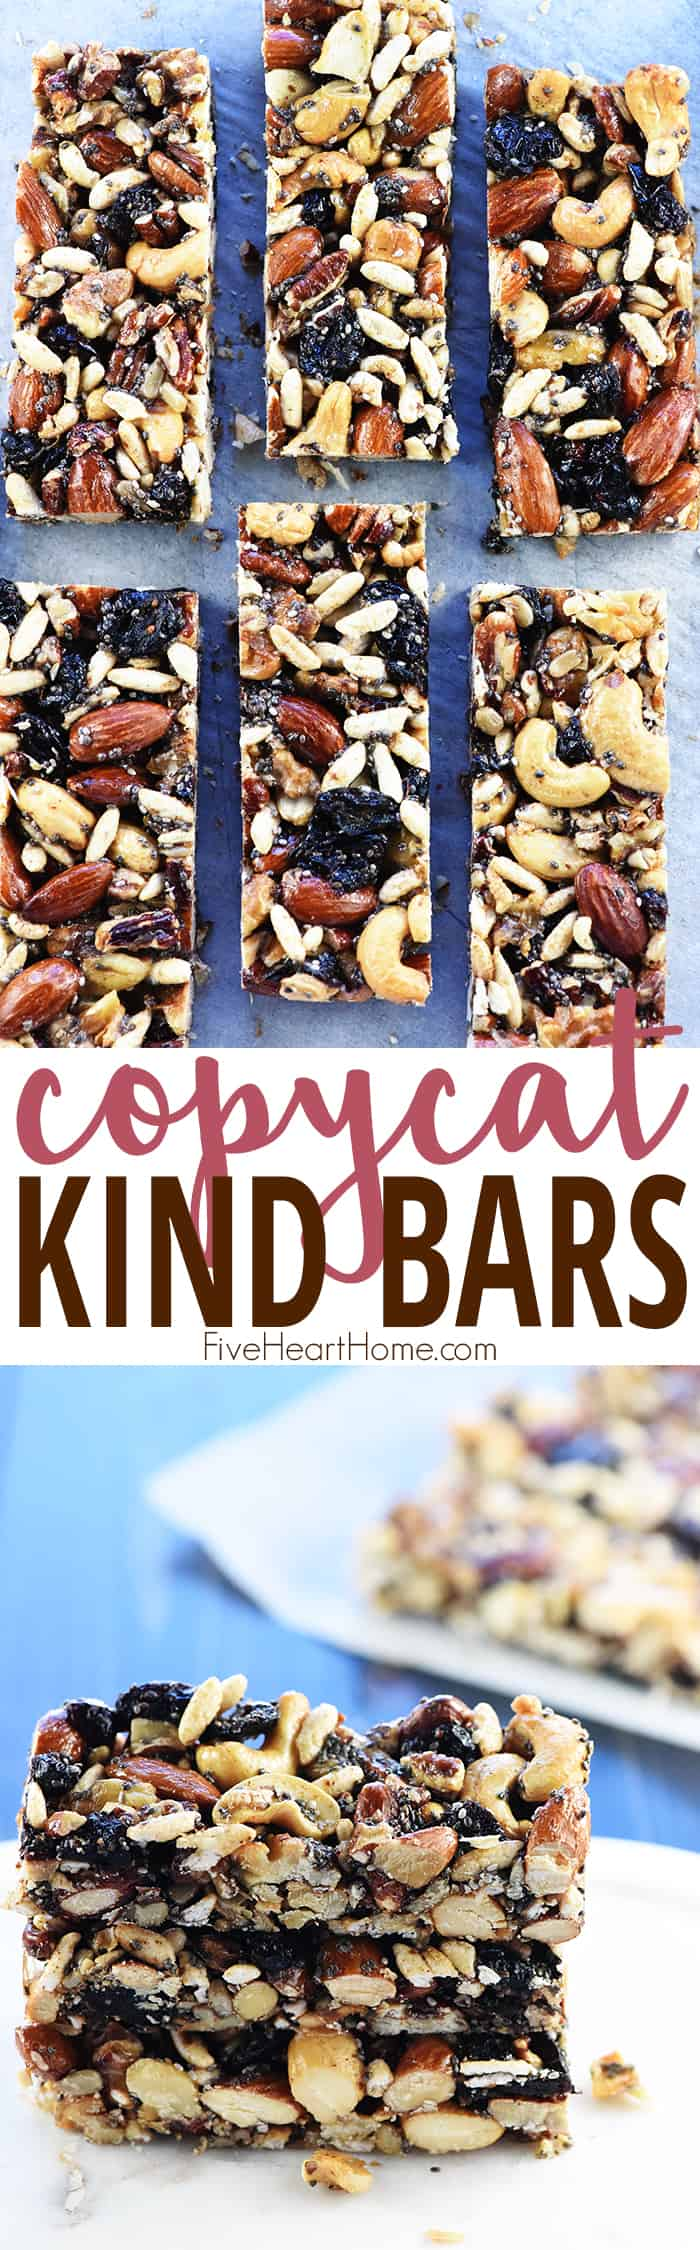 Copycat KIND Bars ~ a homemade version of the popular, wholesome, nut-packed energy bars...use your favorite ingredients to make them economically at home! | FiveHeartHome.com via @fivehearthome